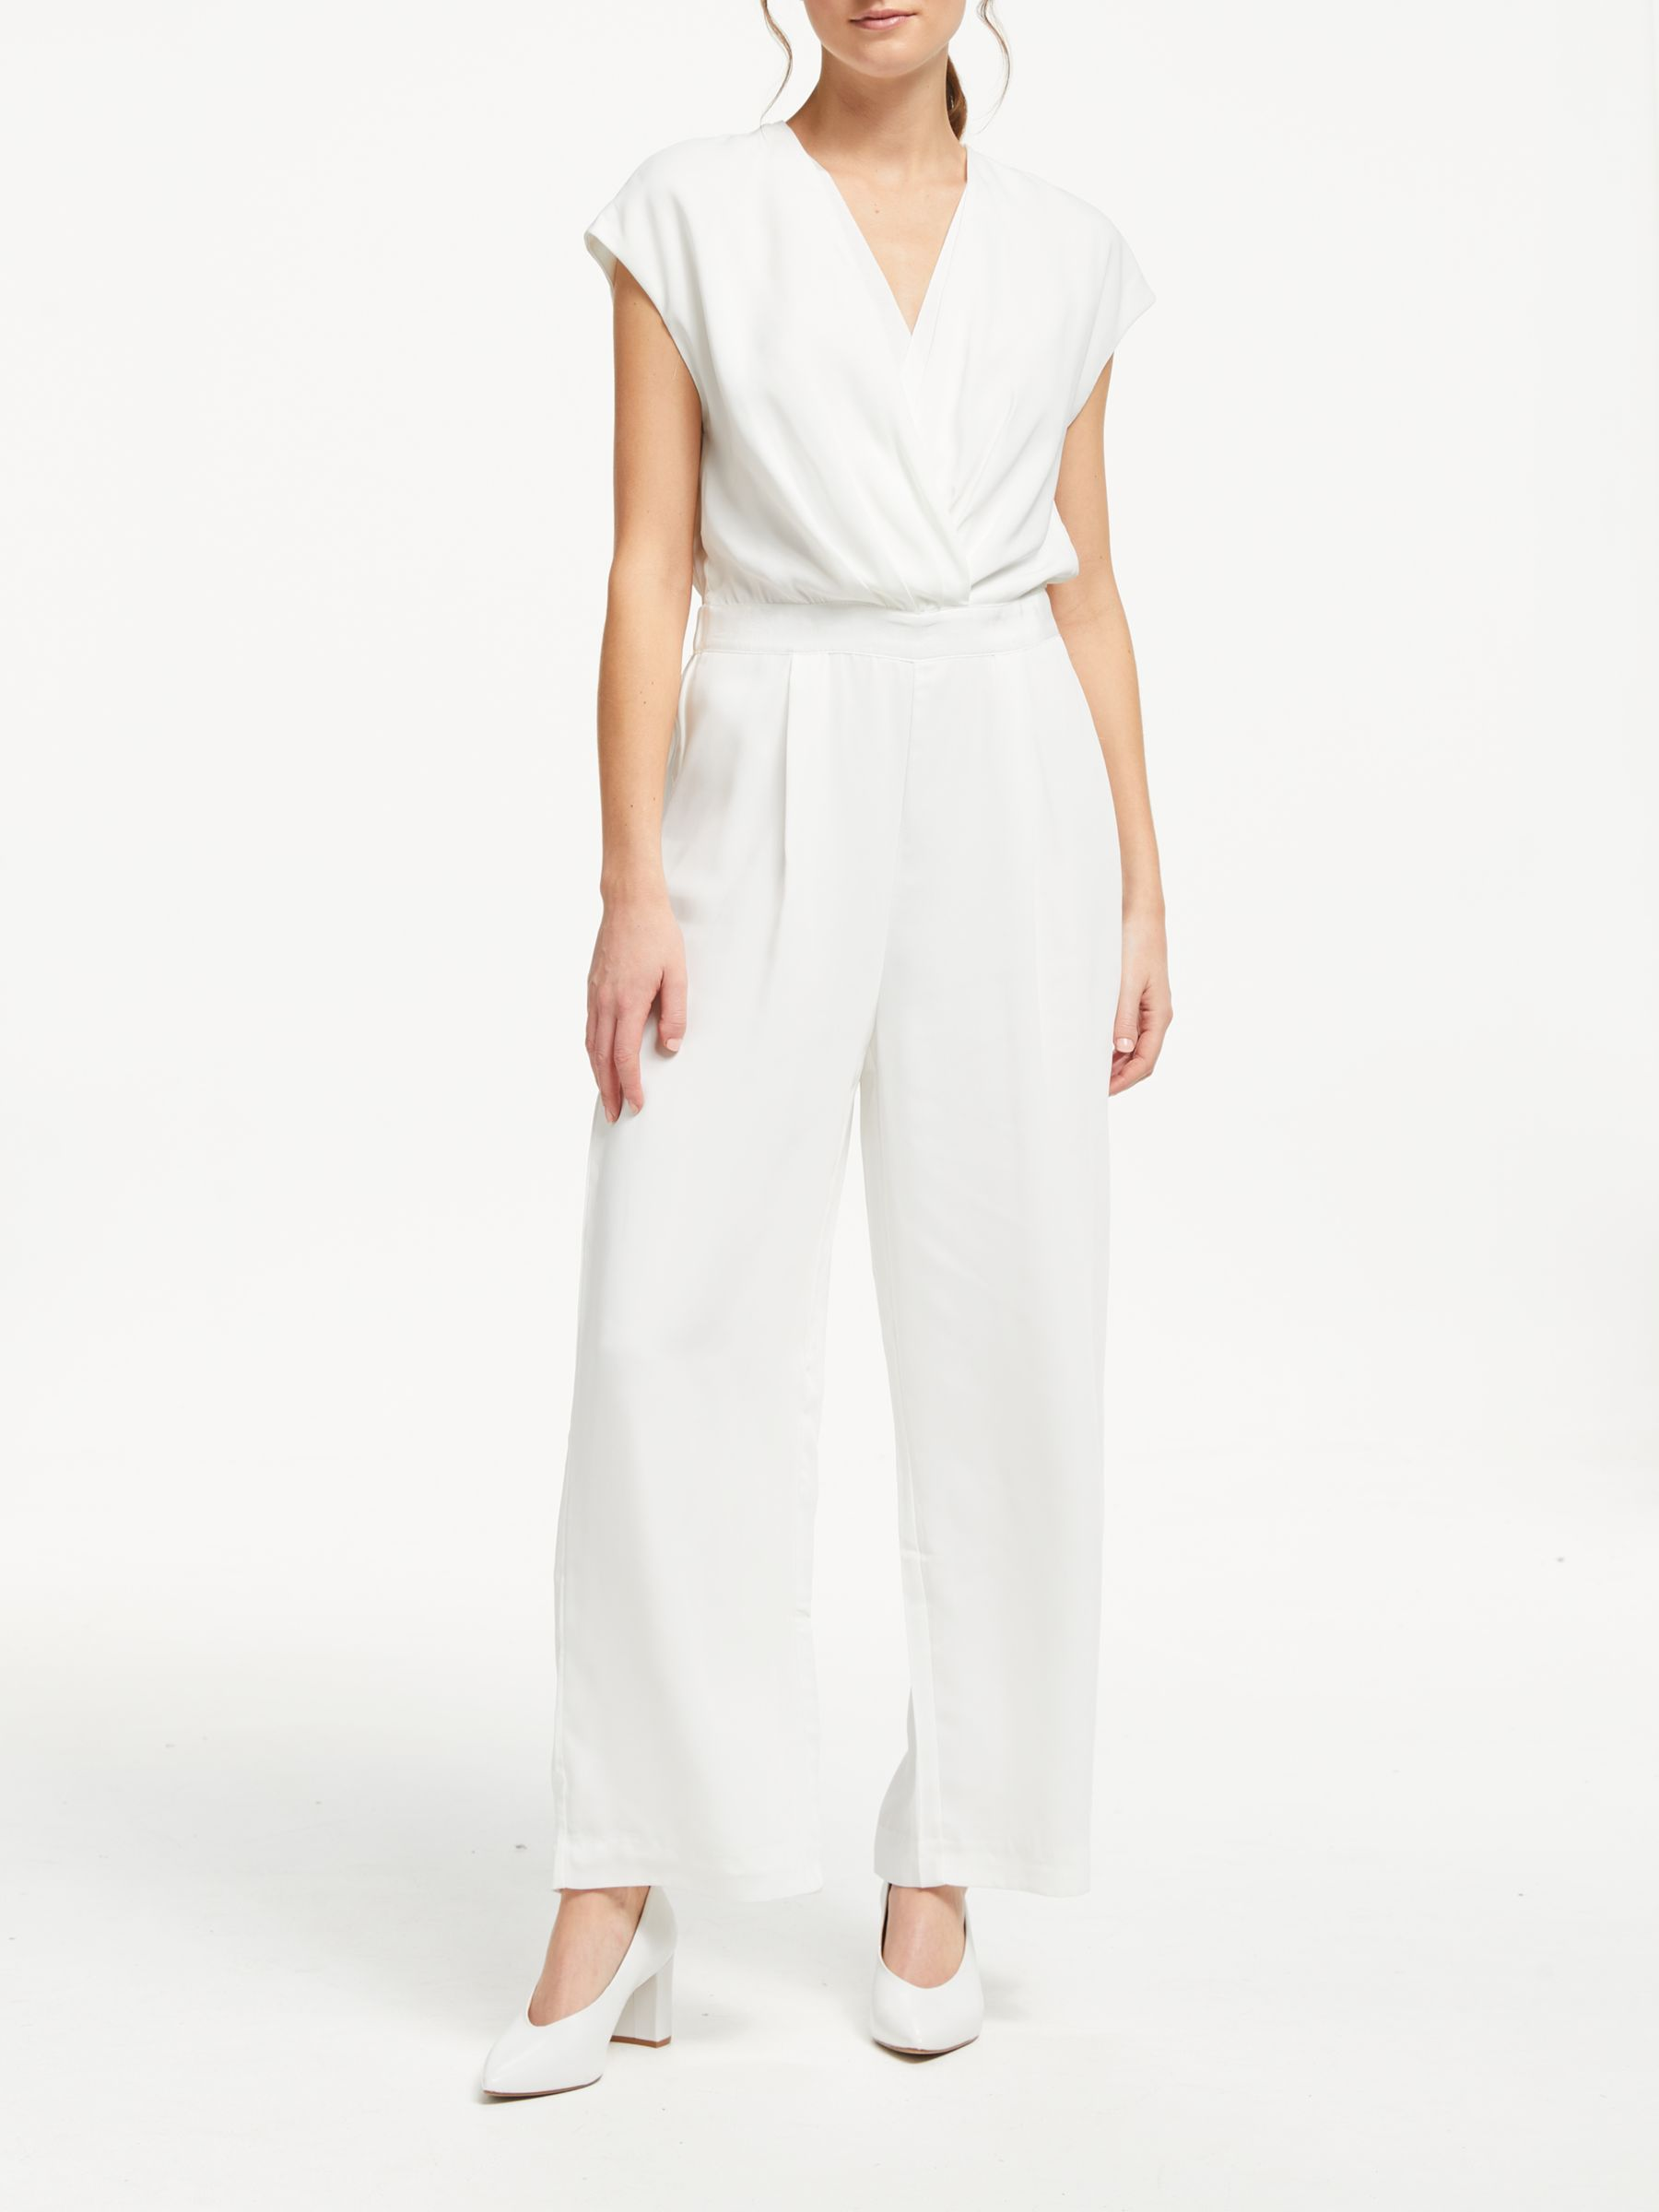 ed67de8caf7 Y.A.S Mamba Short Sleeve Jumpsuit